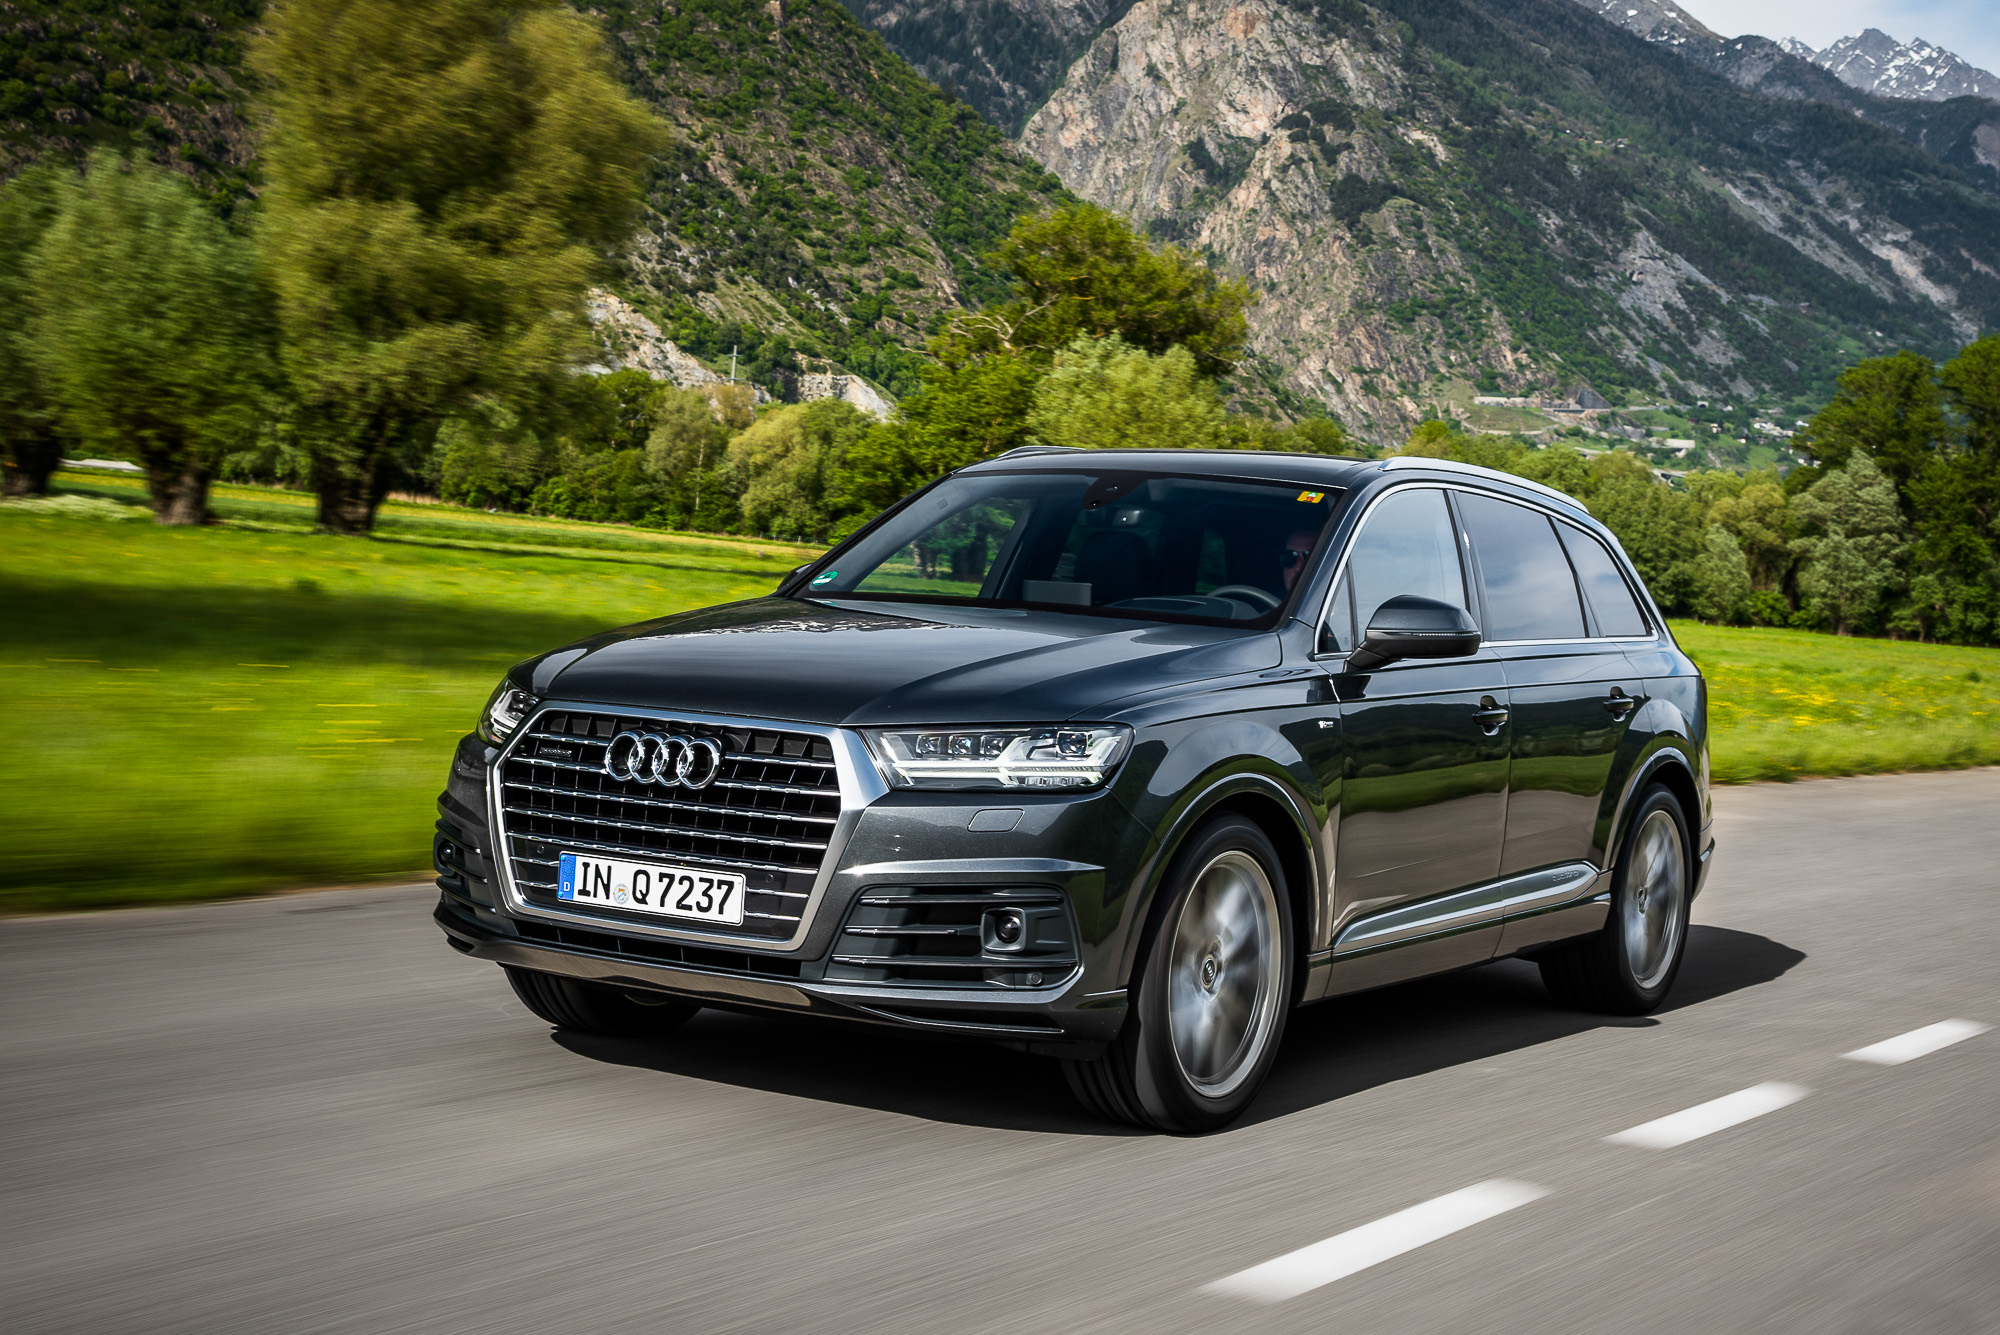 Audi Q5 Lease >> 2016 Audi Q7 Review | CarAdvice